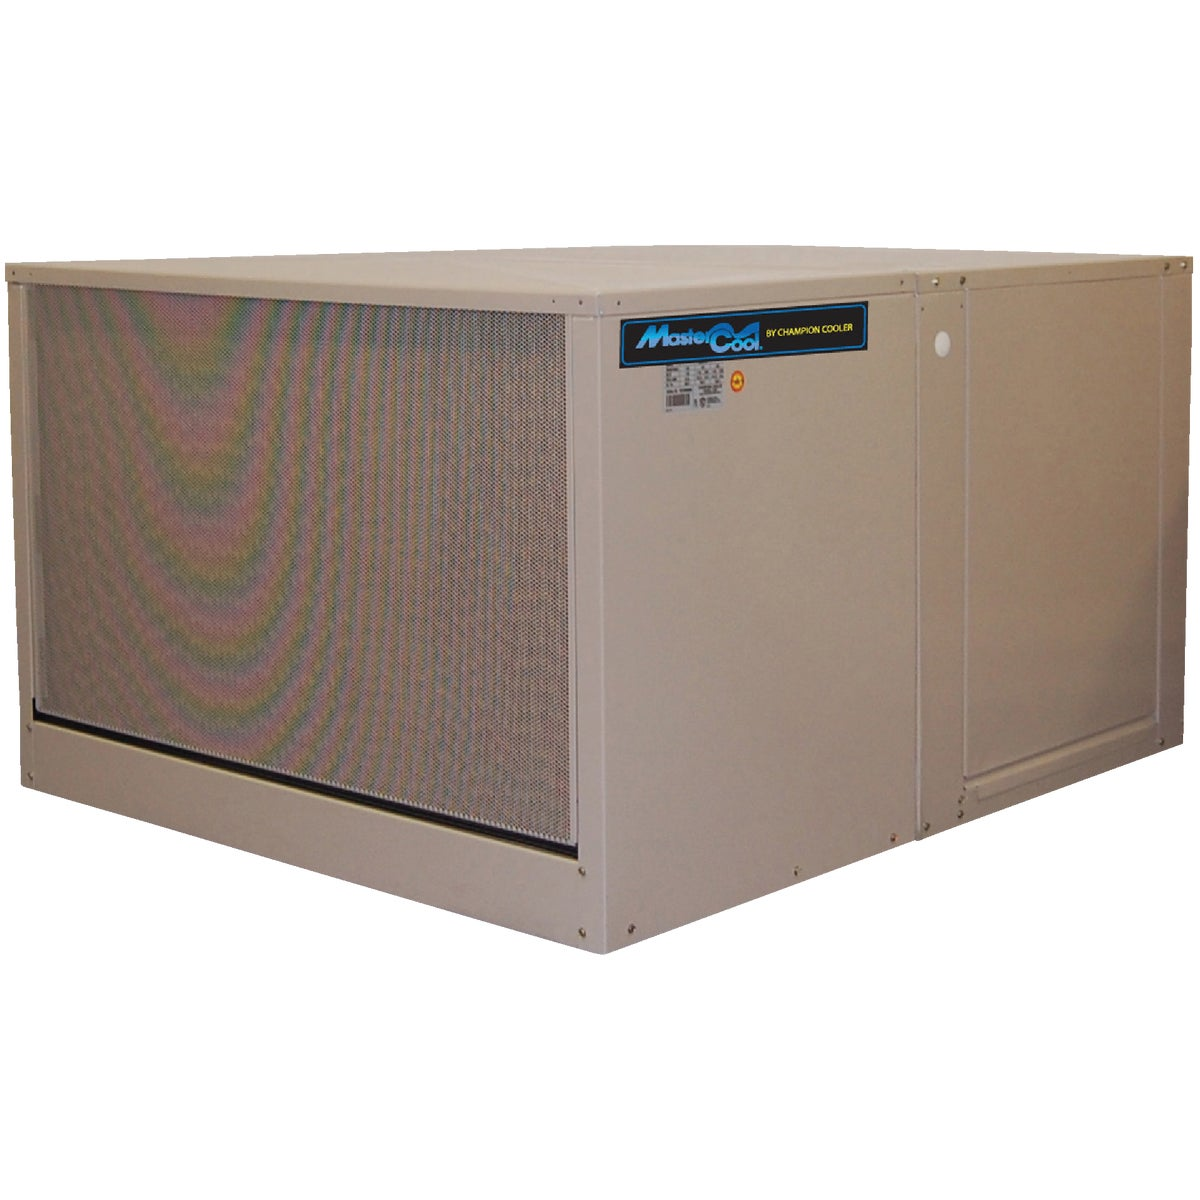 7000CFM DOWN DRFT COOLER - ADA7112 by Champion Cooler Corp